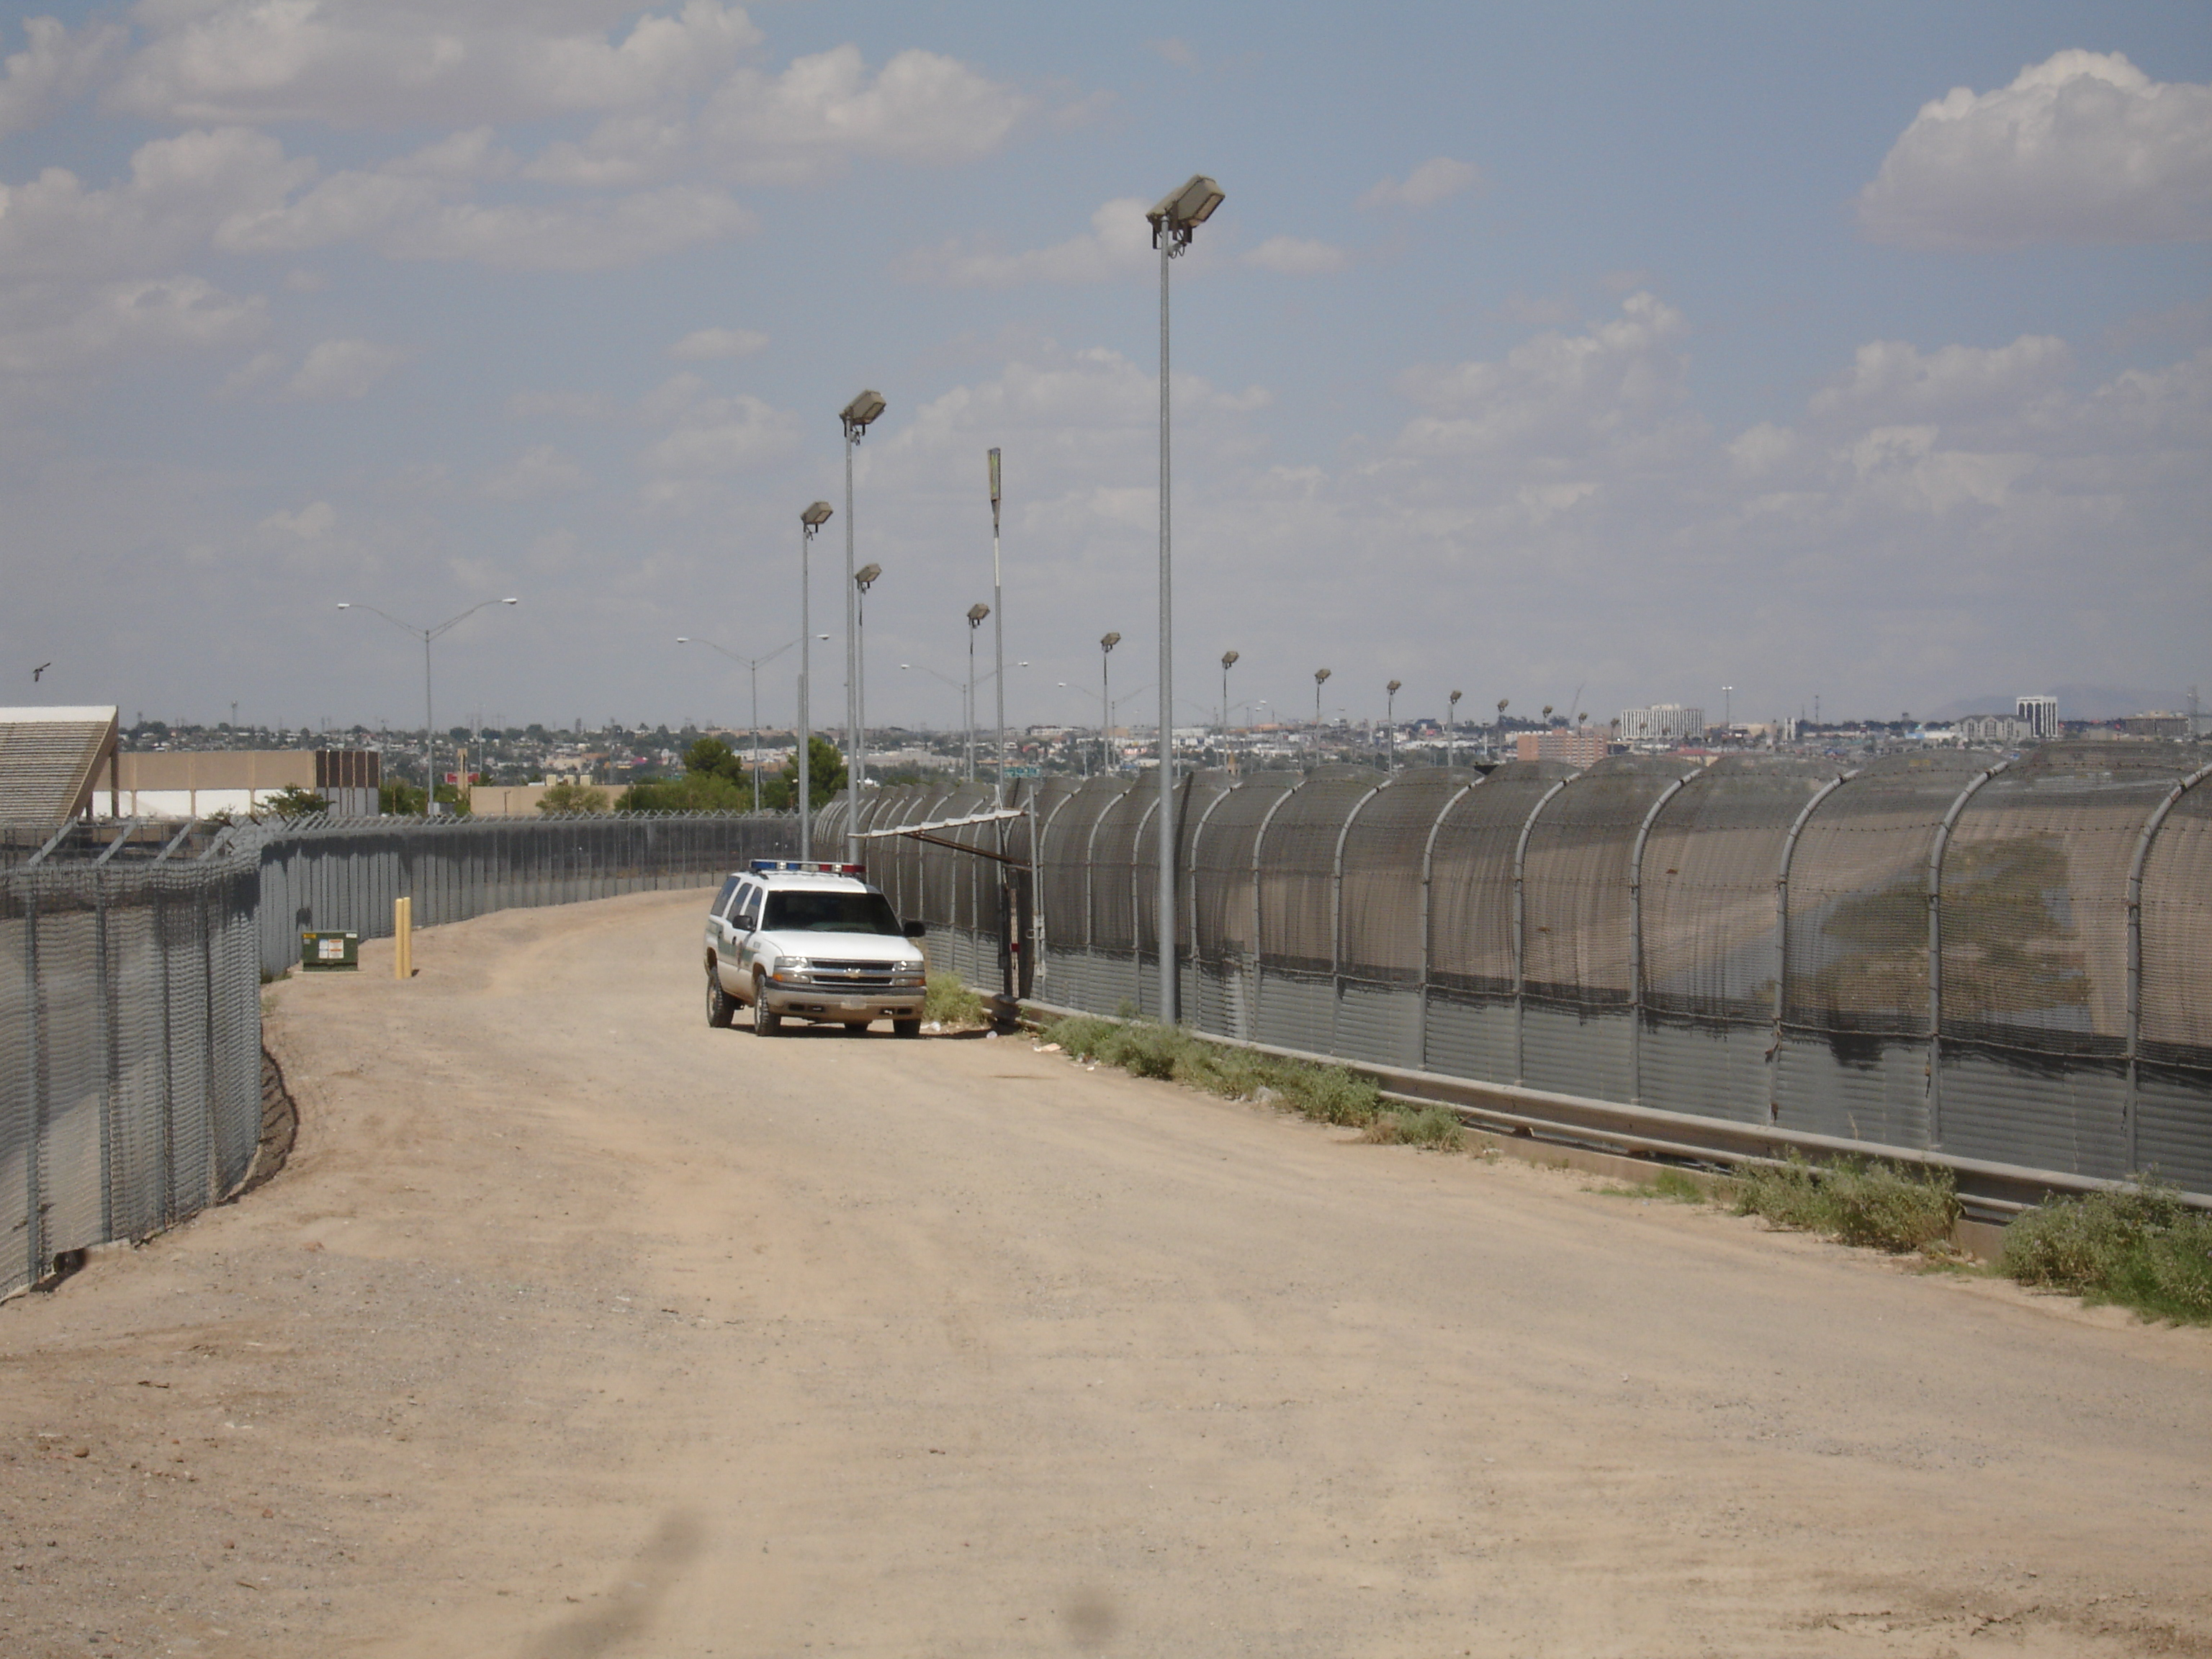 The U.S. border fence near El Paso, Texas